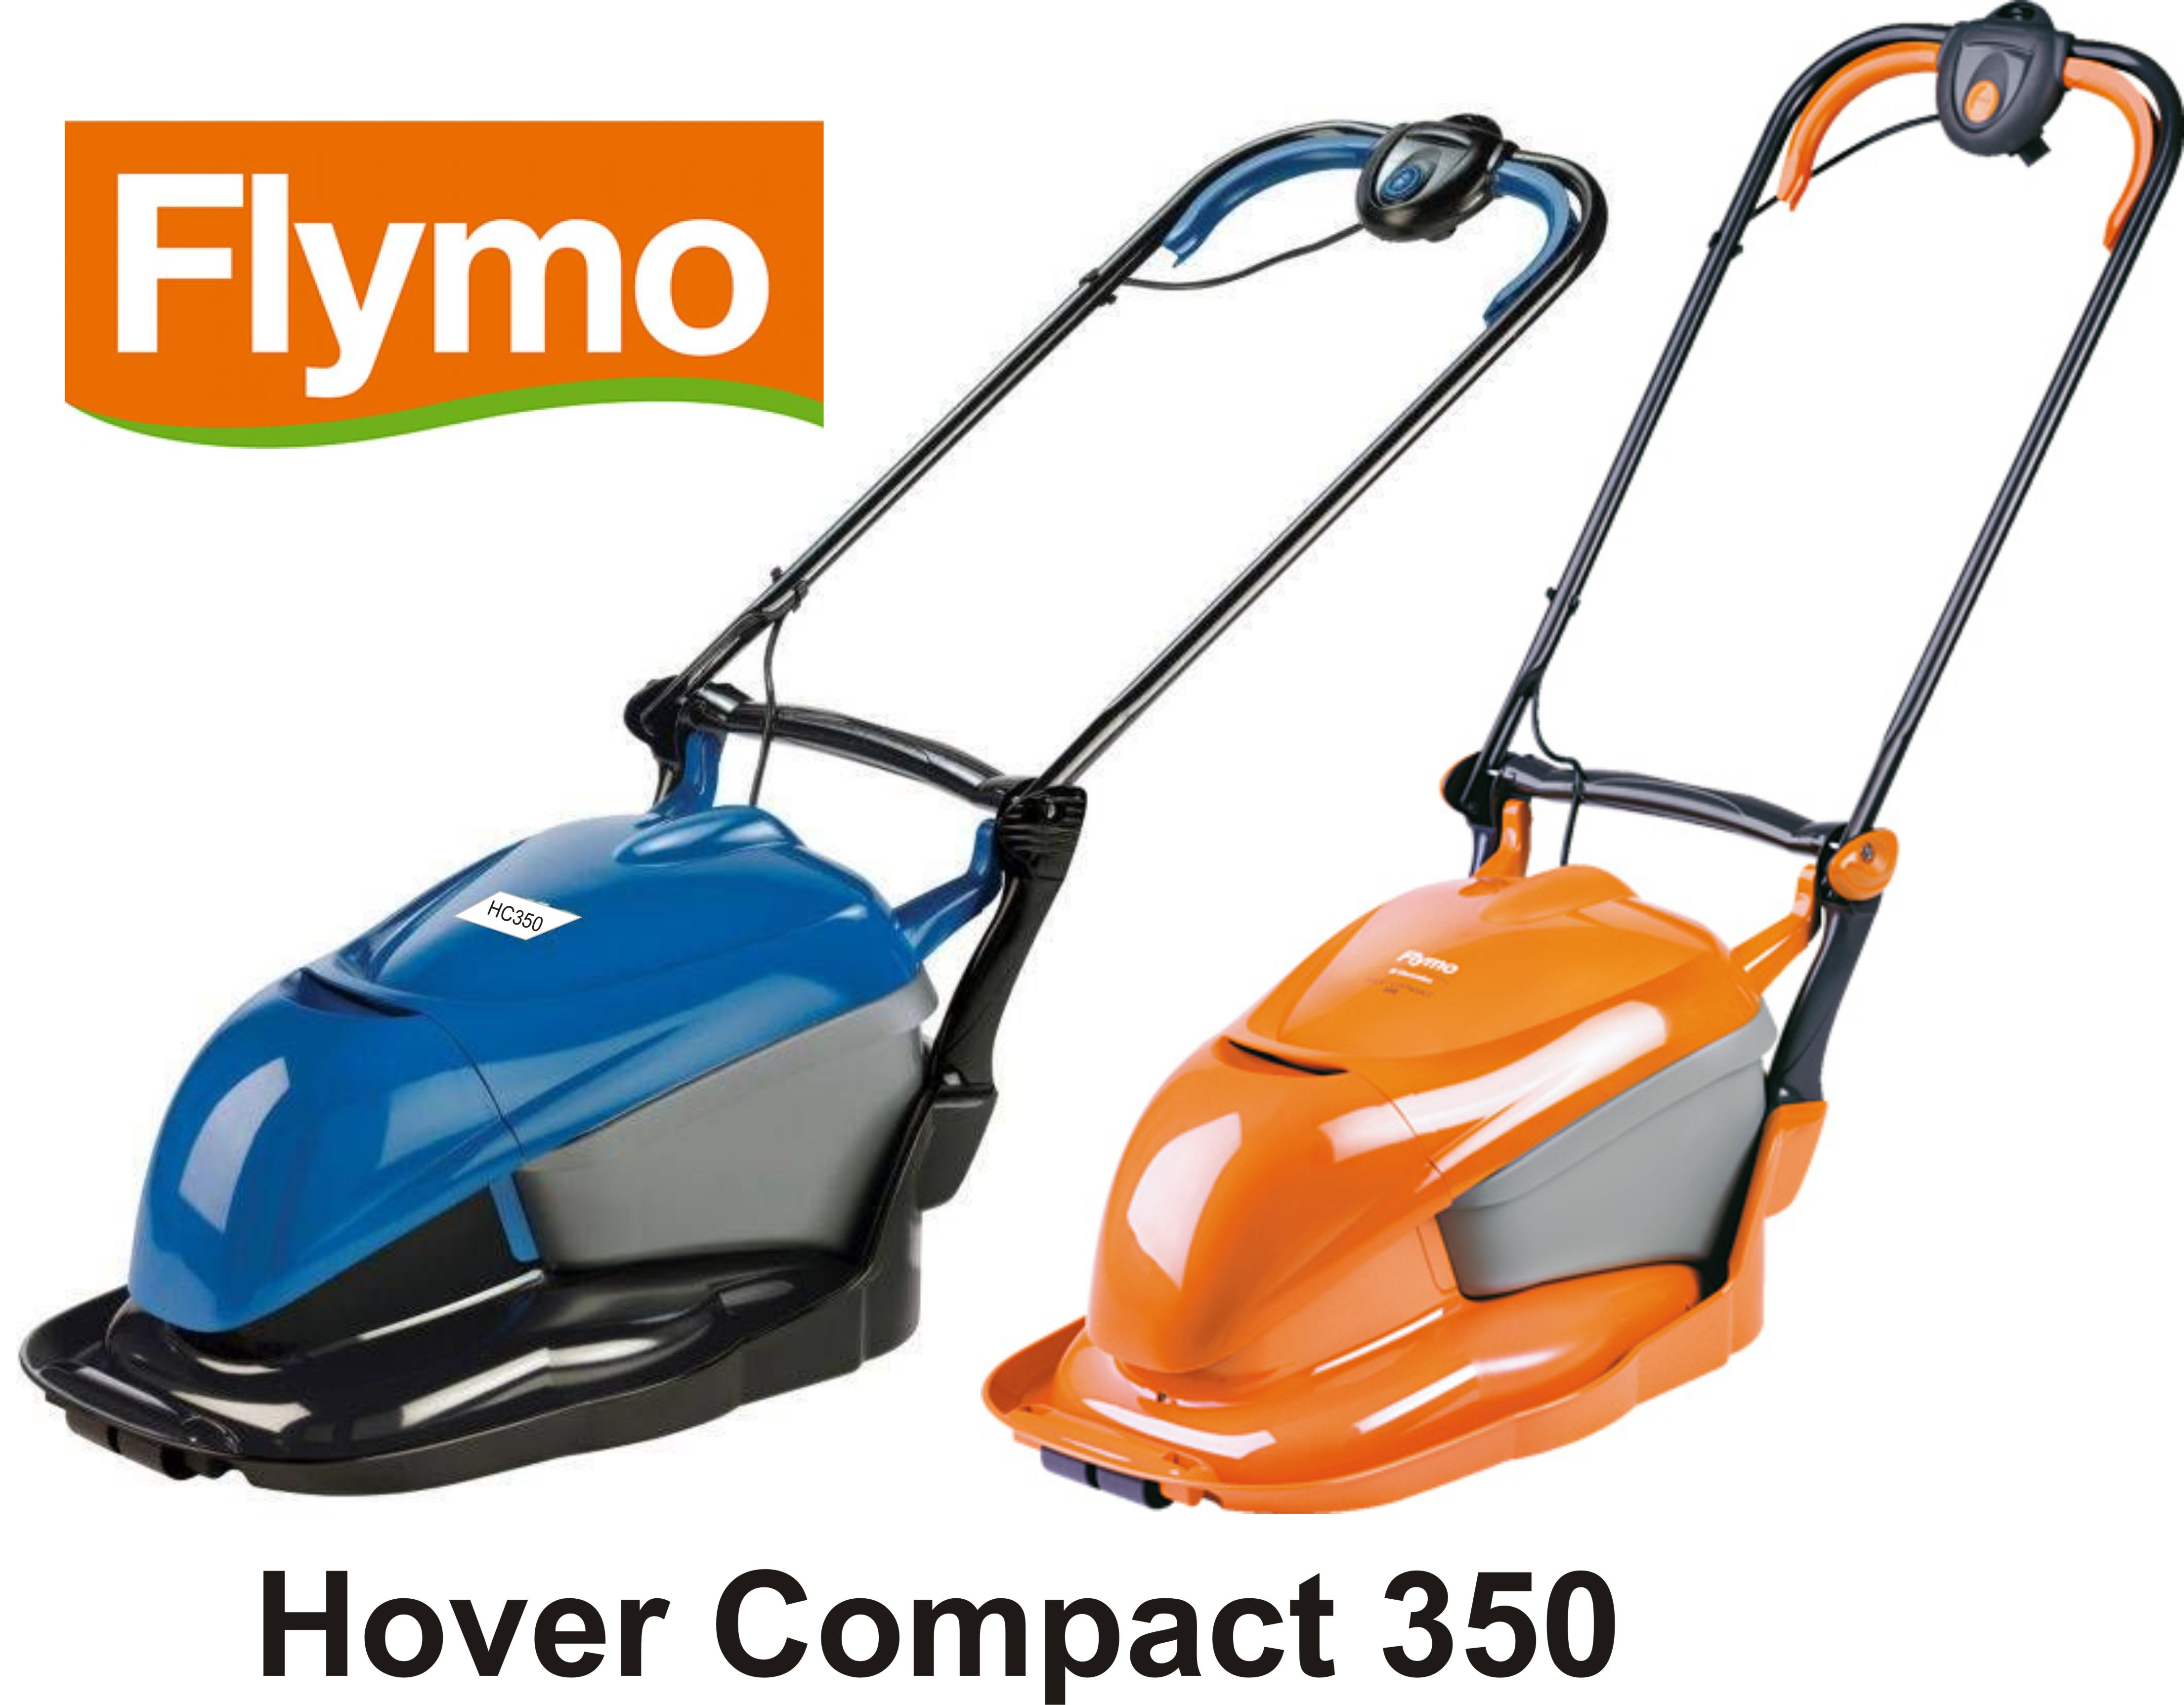 Flymo/Husqvarna Blue Hover Compact 350 Lawnmower Metal Blade